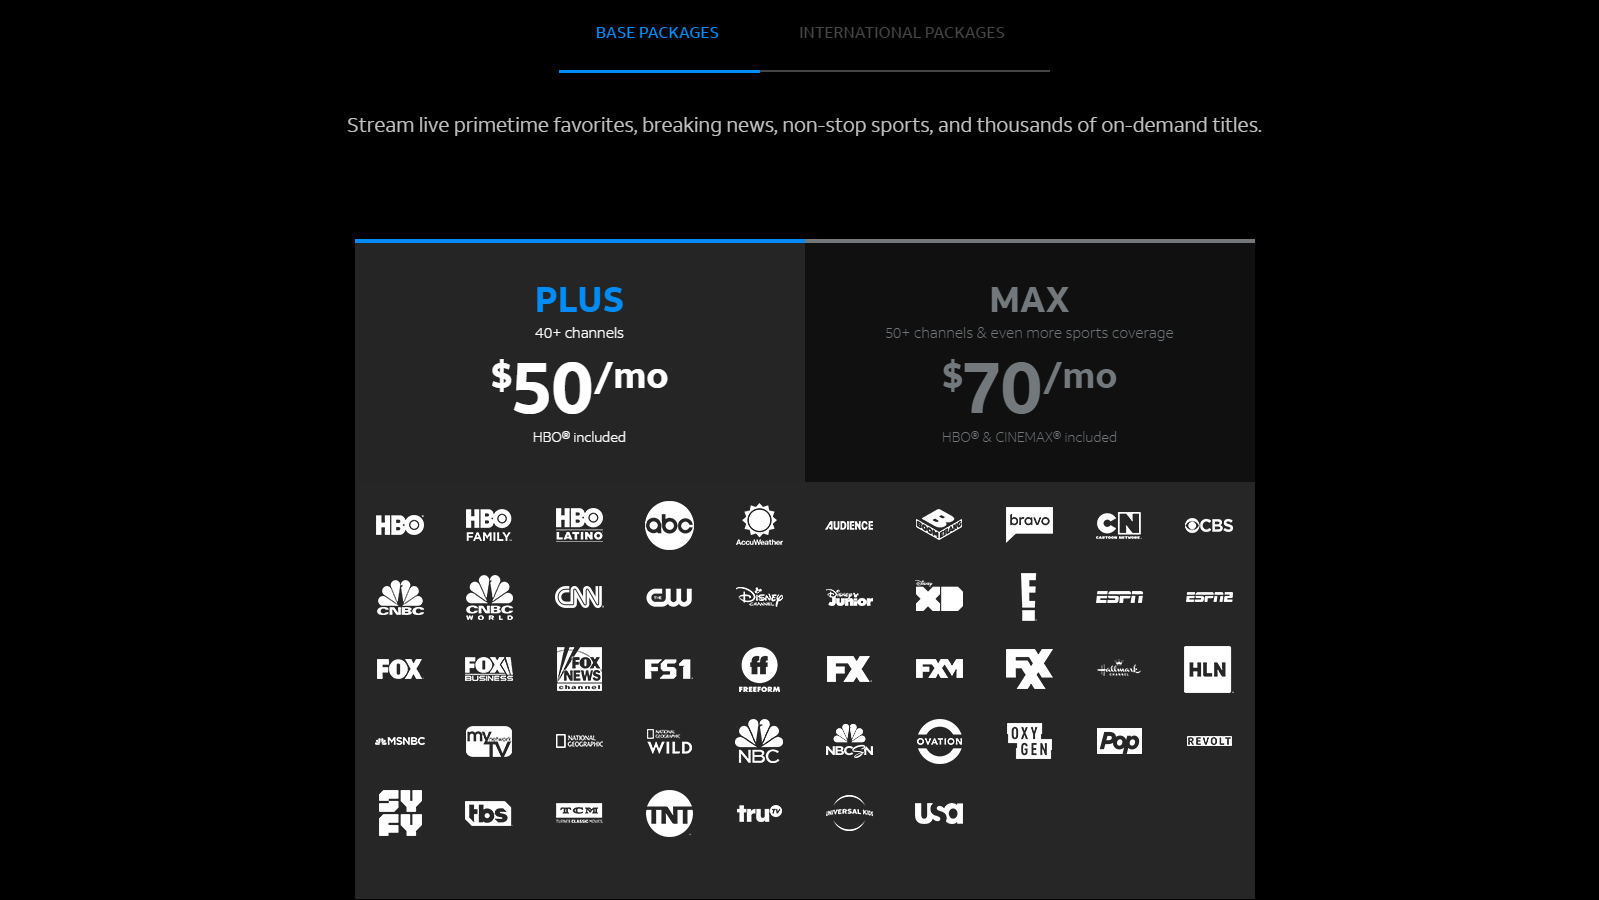 DirecTV Now Then & Now - Is the Platform Worth It After